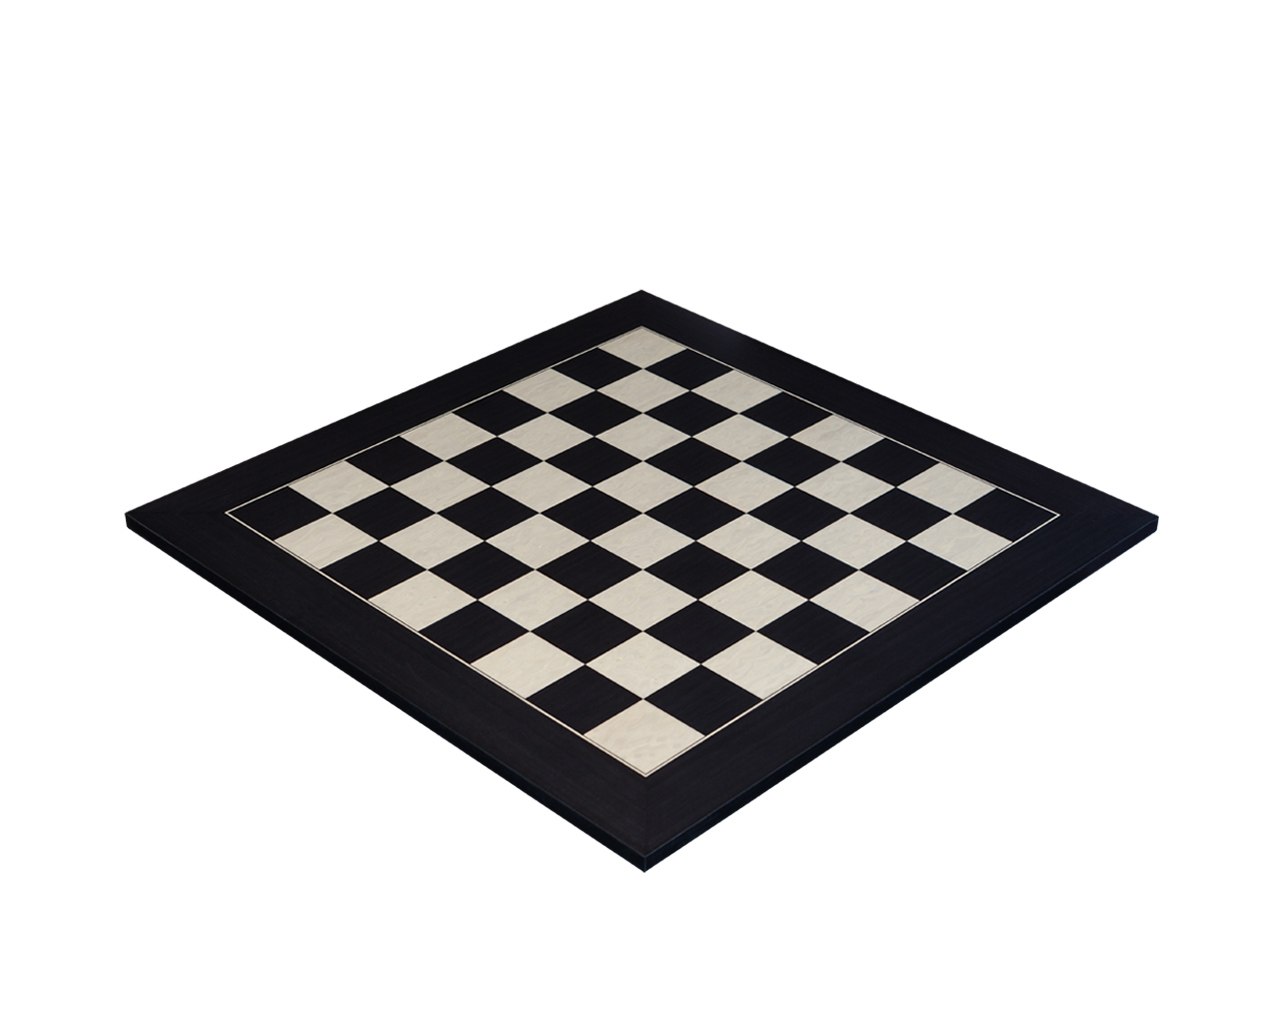 60 Cm Asturias 60 Cm Black Erable Chess Board